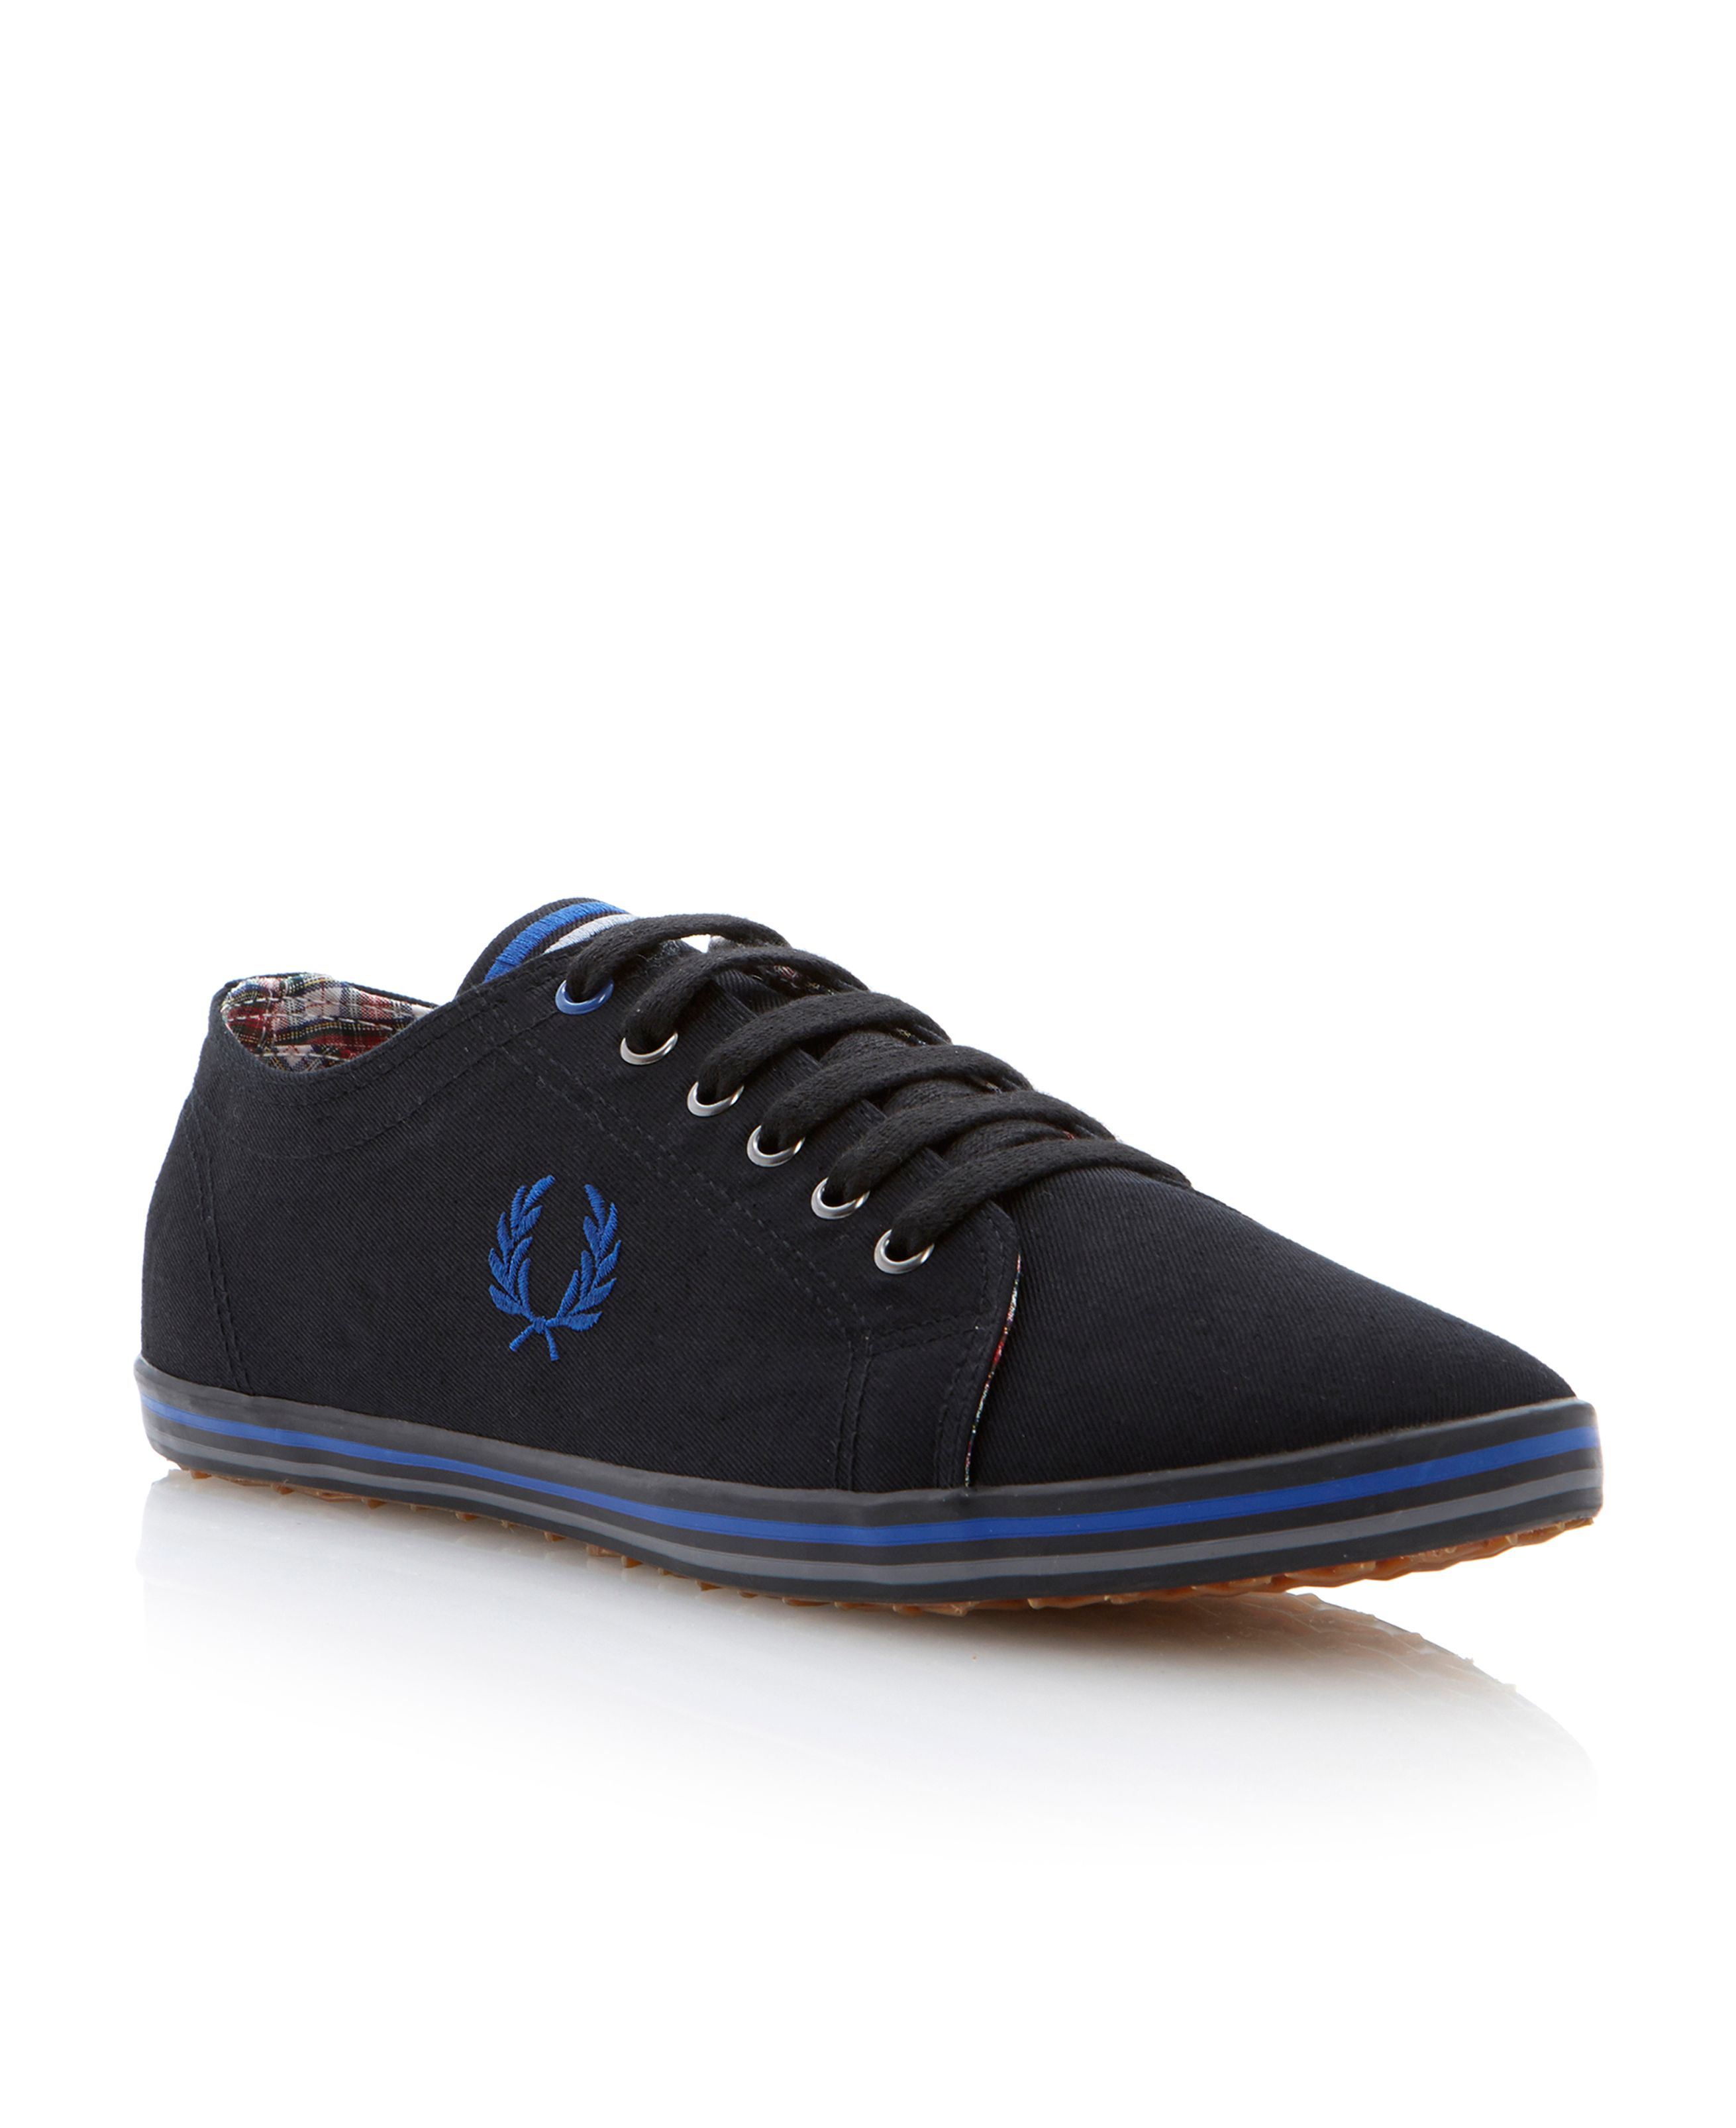 Kingston twill lace up authentic canvas shoes